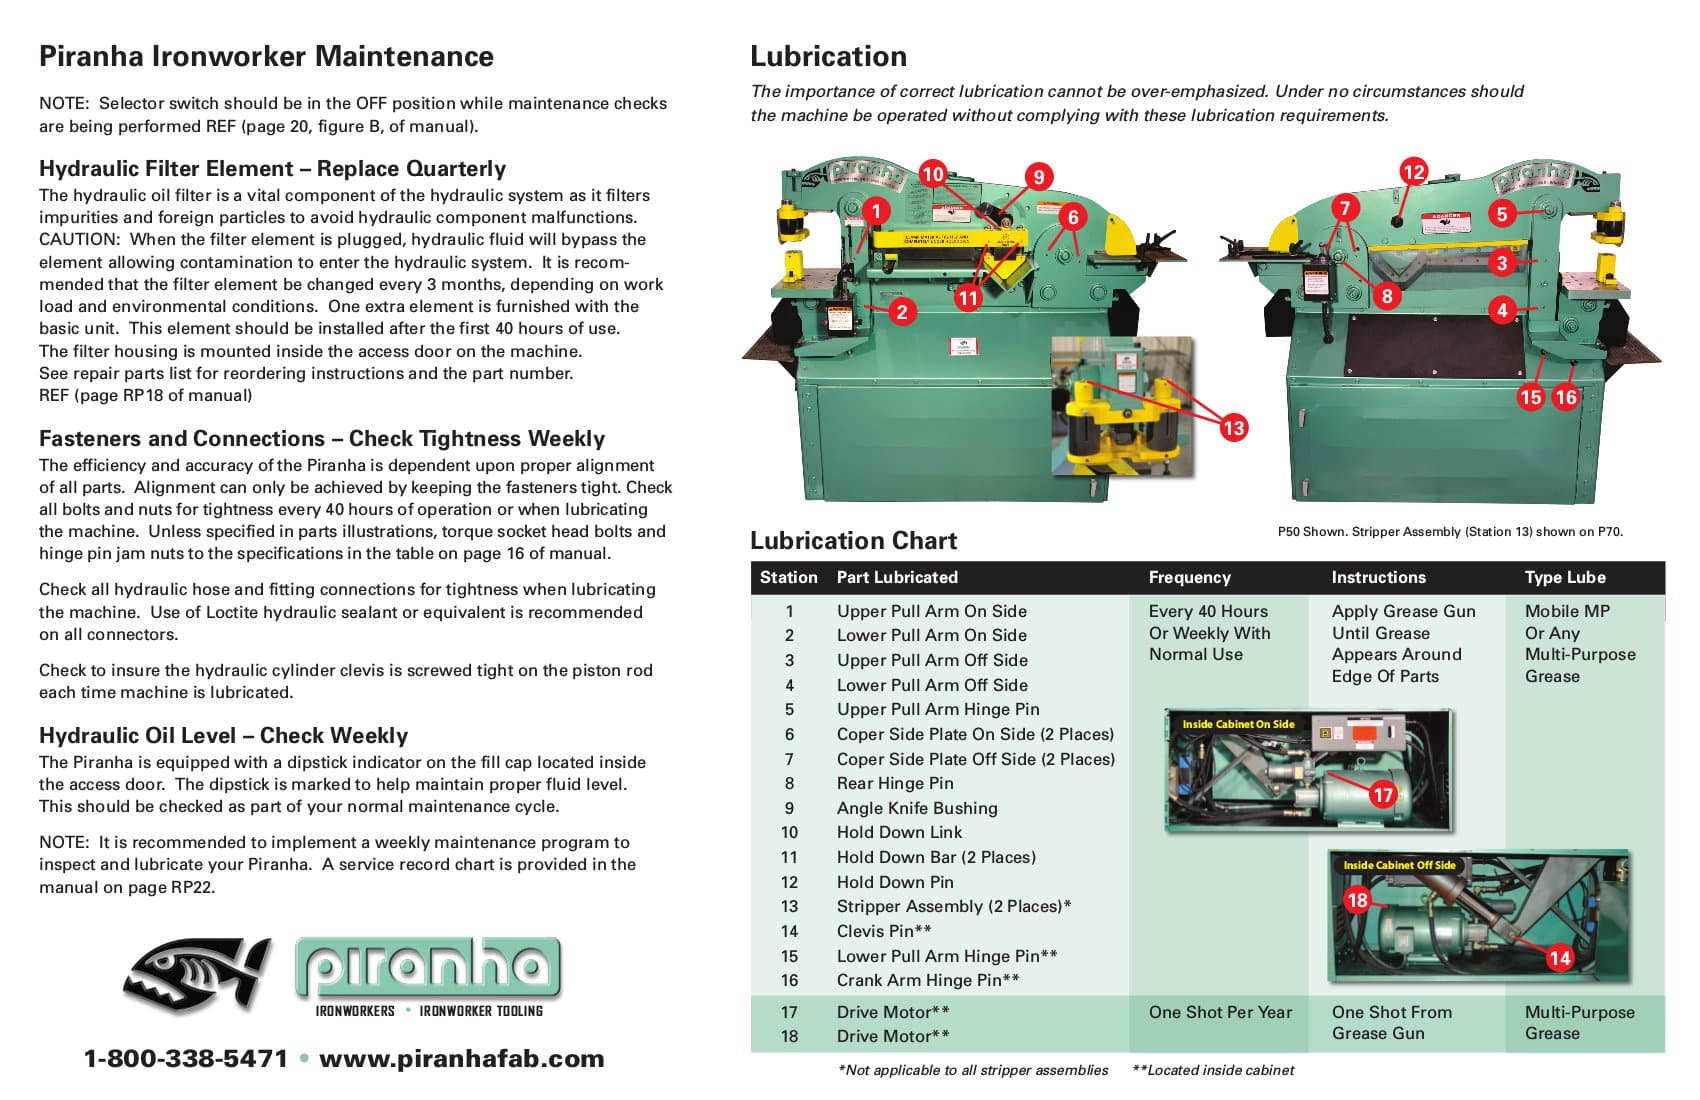 Piranha_Ironworker_Maintenance_Chart